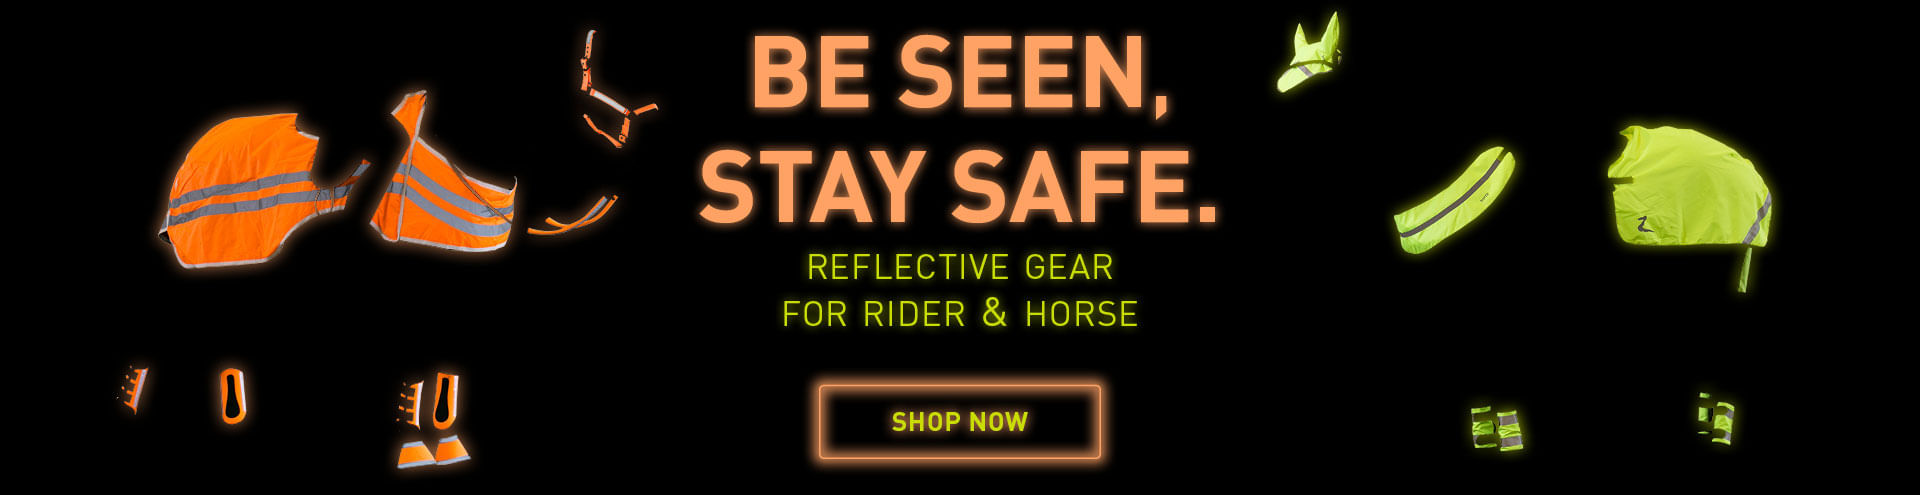 Horze Reflective gear for rider and horse